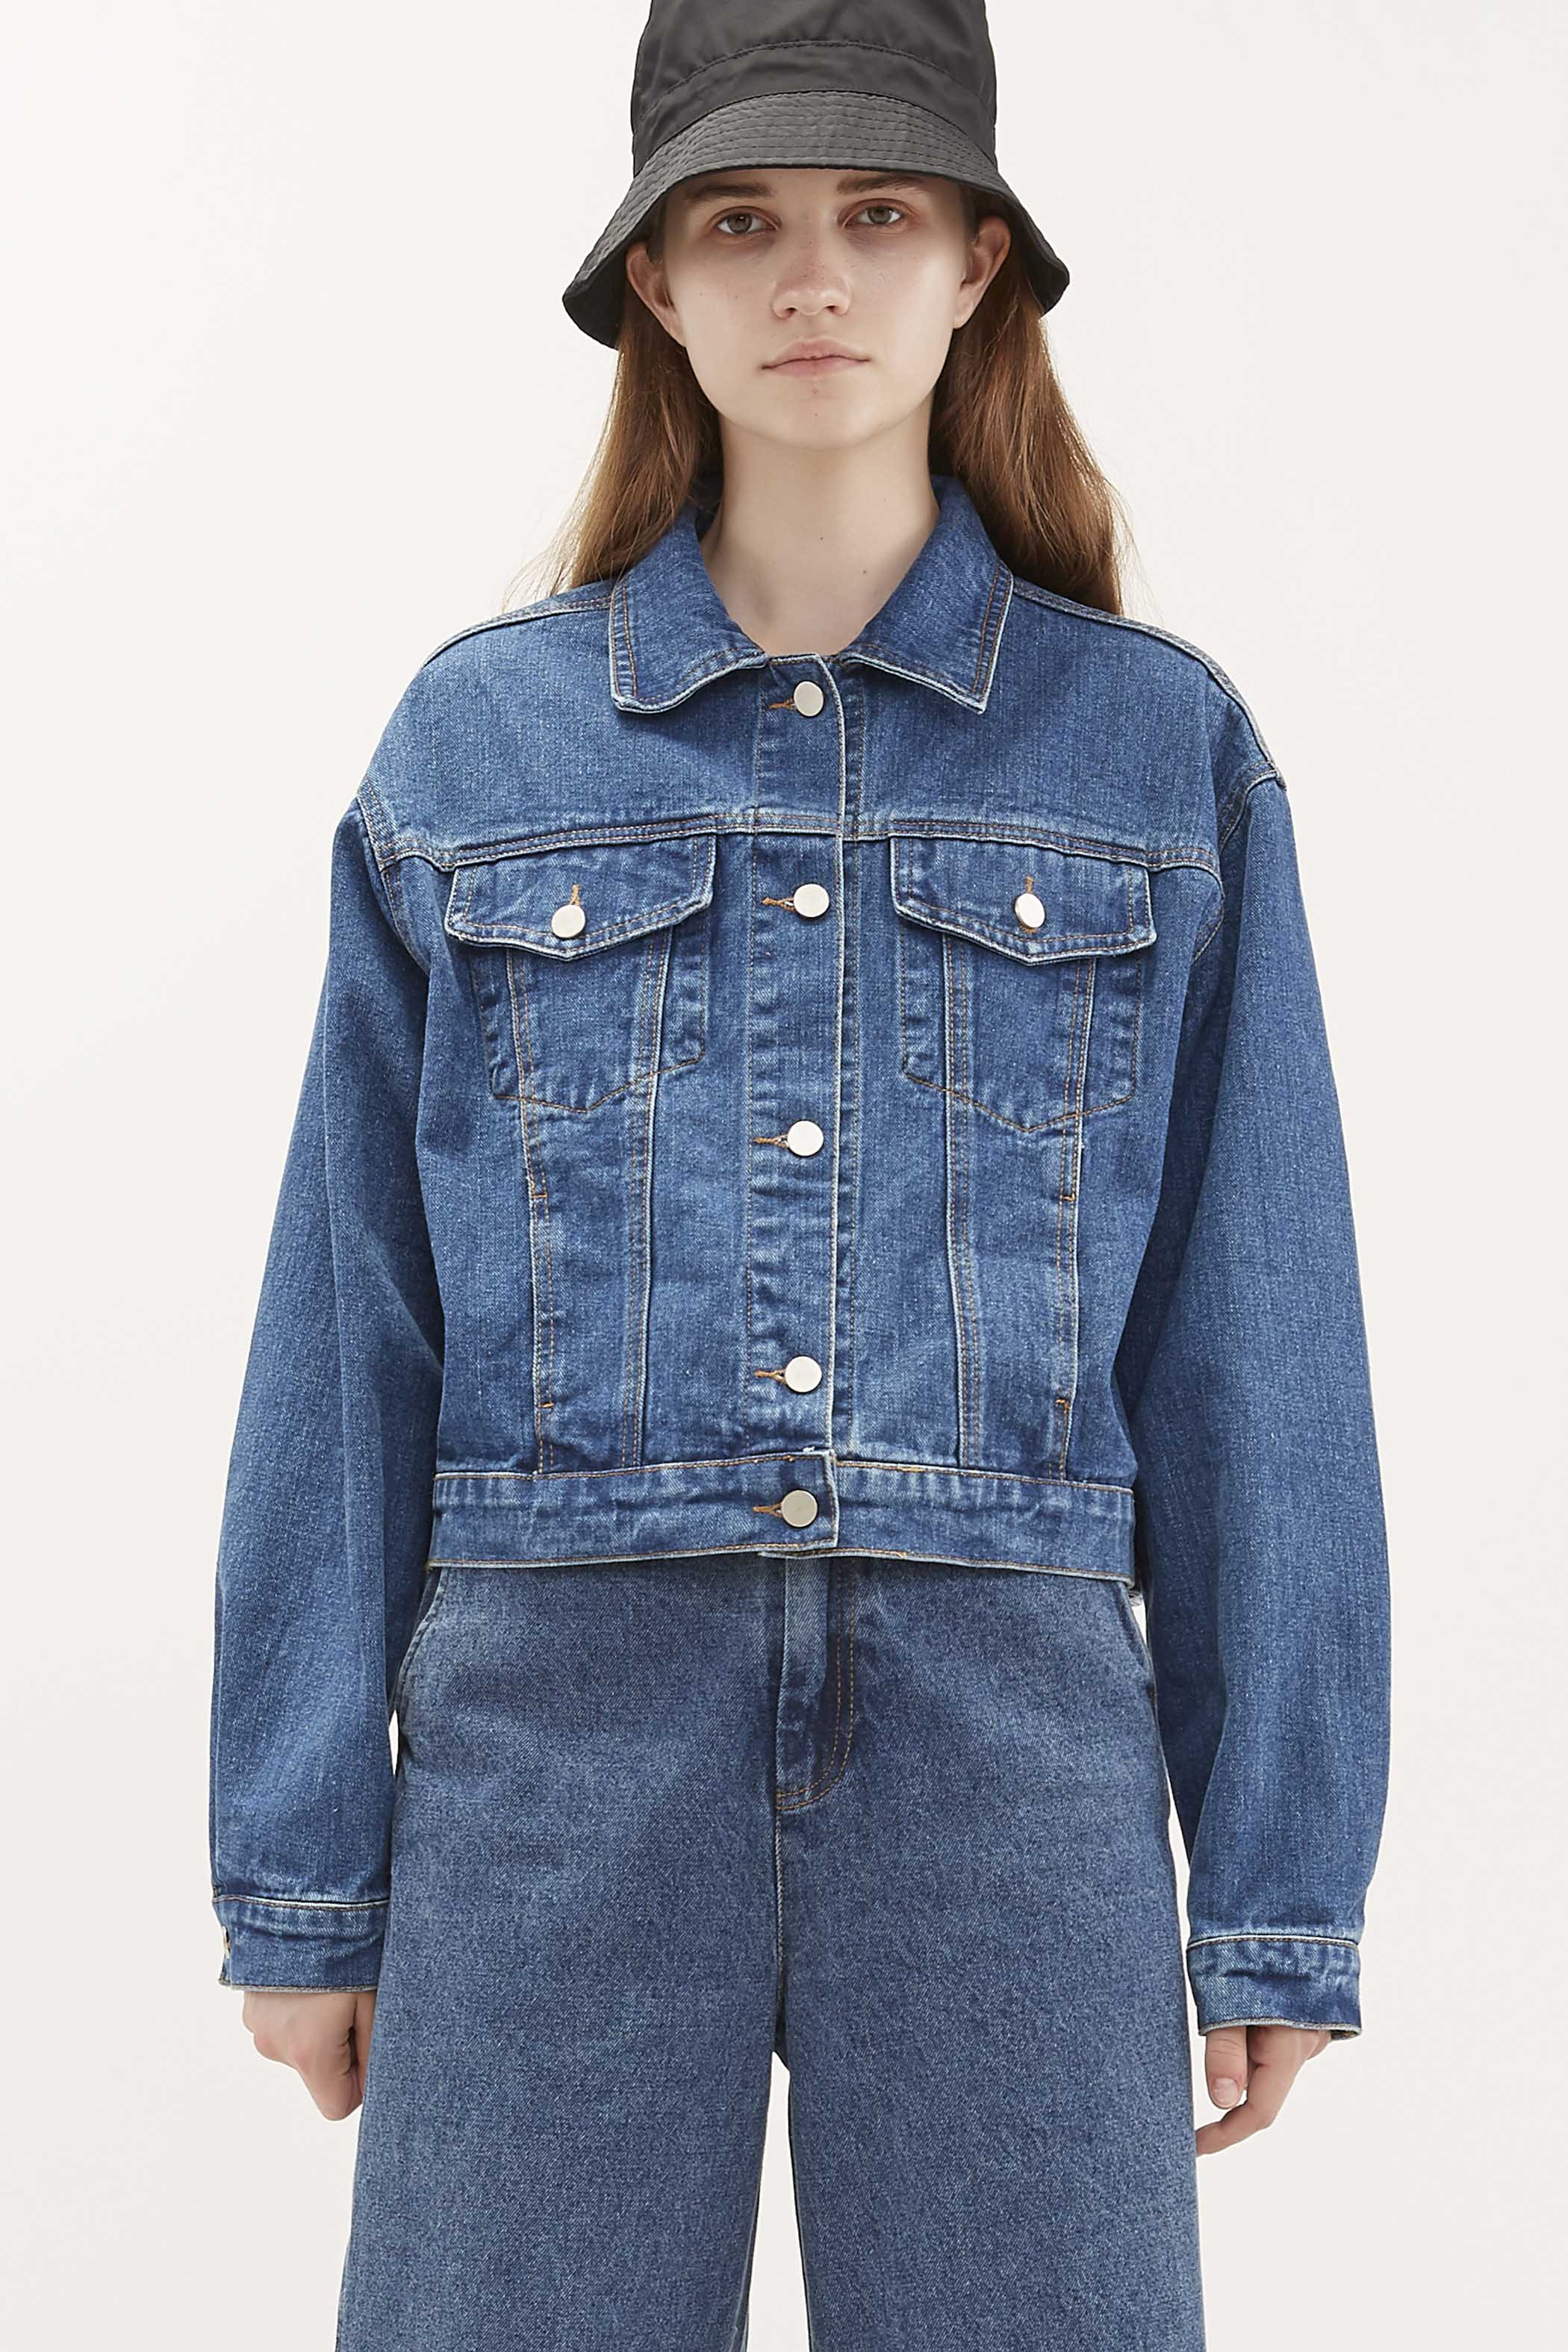 Clansy Denim Jacket